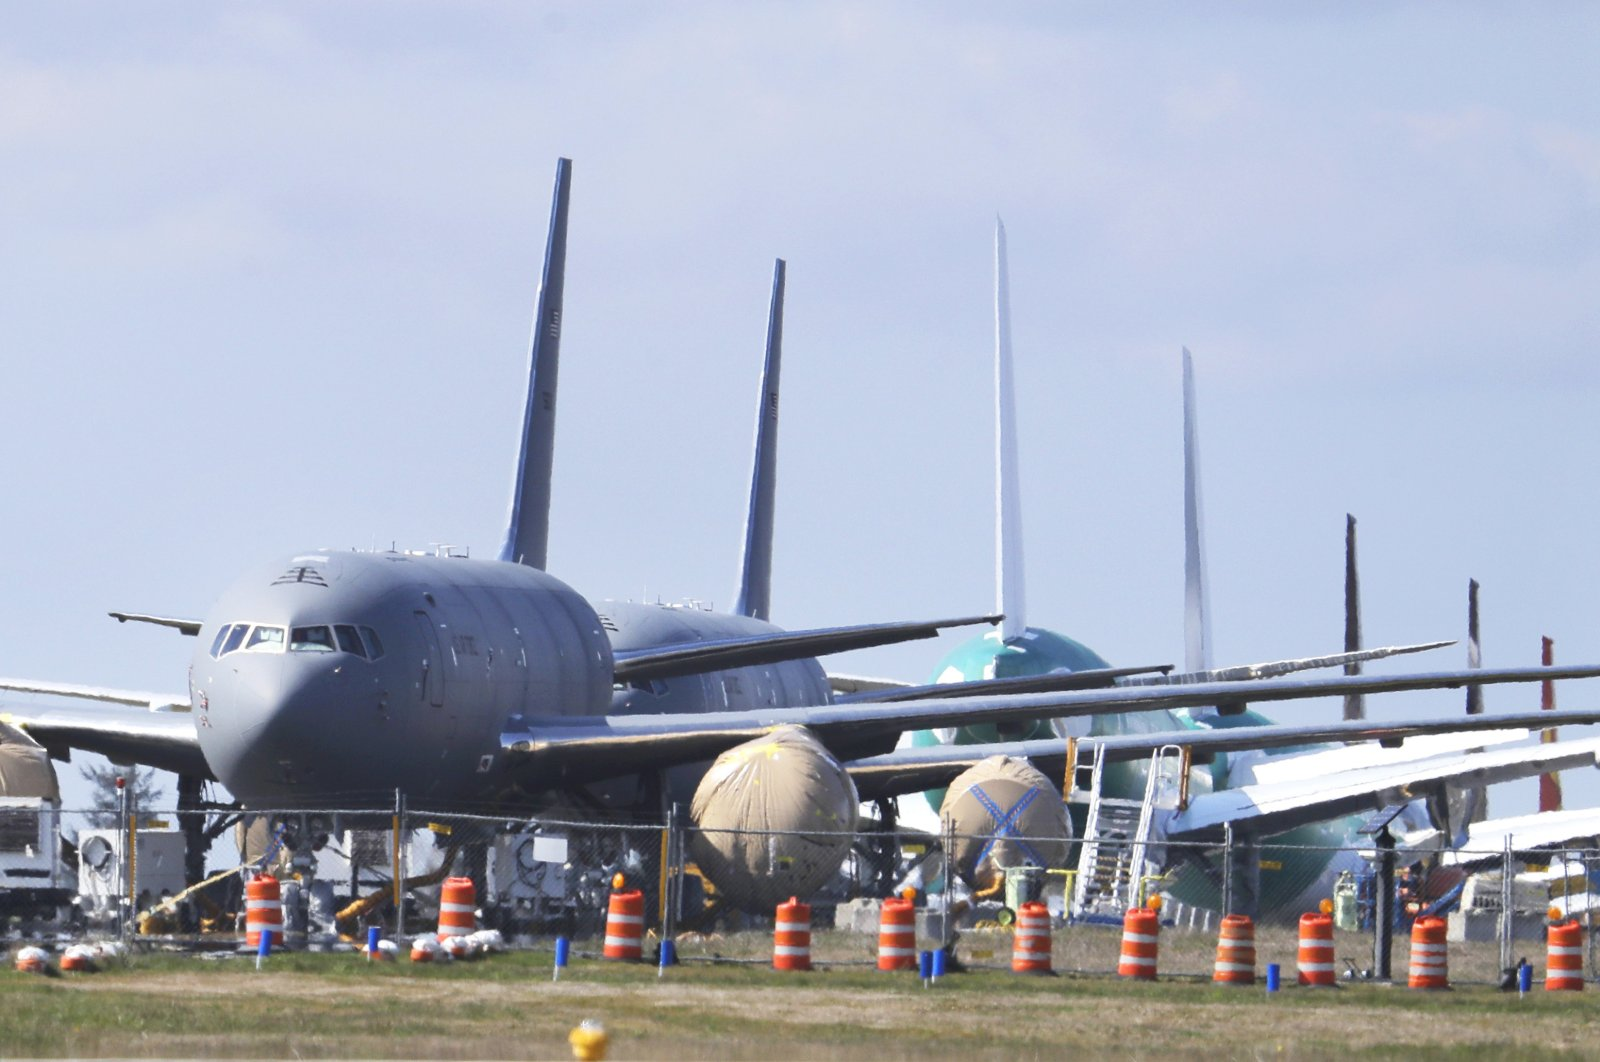 In this April 7, 2020, file photo, U.S. Air Force KC-46 tankers being built by Boeing sit parked at the Paine Field airport in Everett, Wash. (AP Photo)